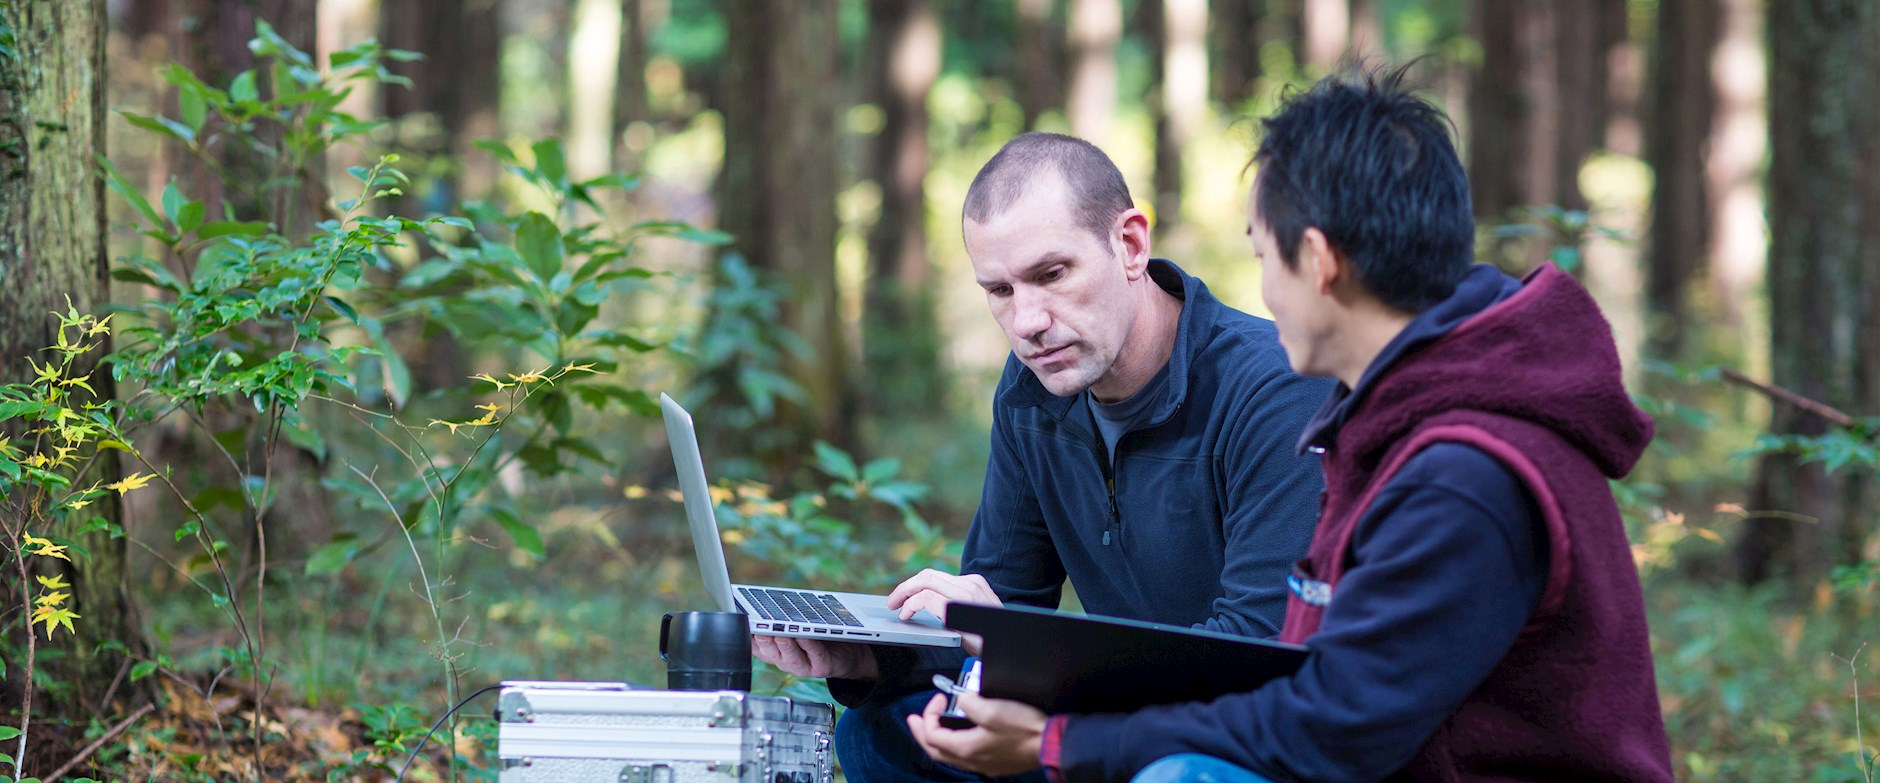 Two men working in the woods on computers